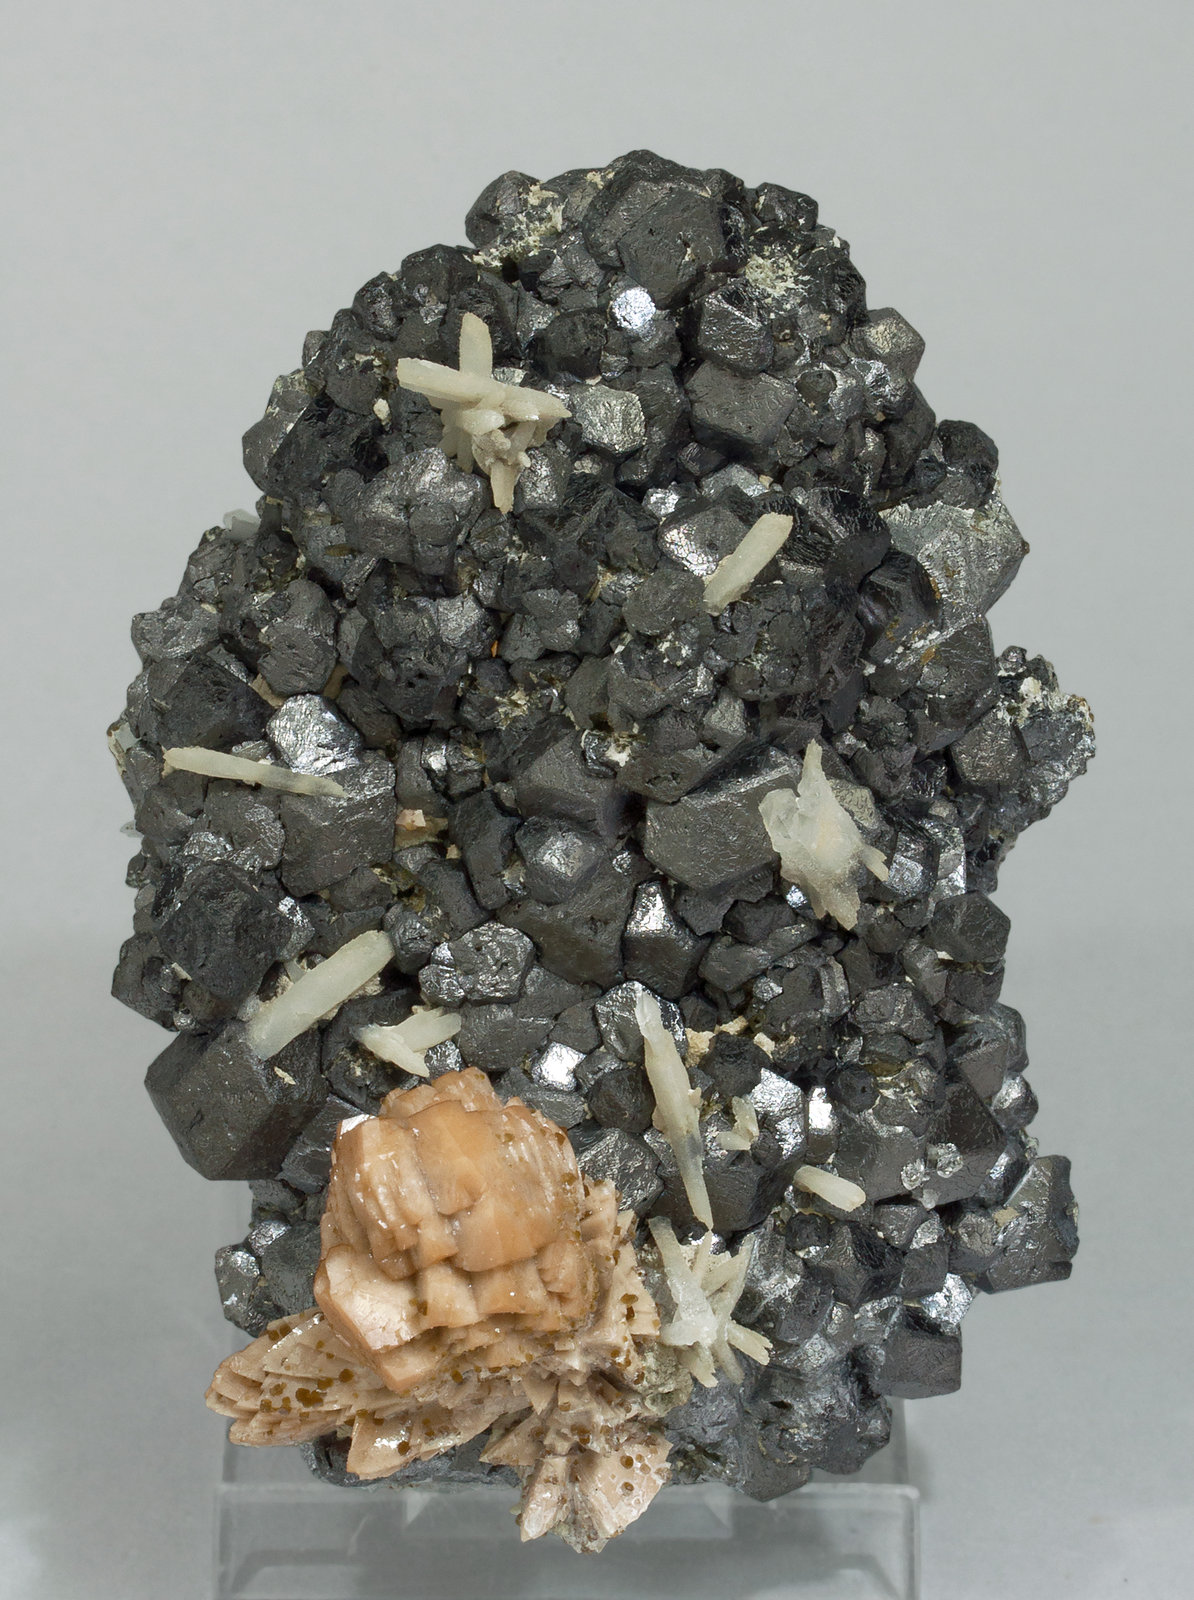 specimens/s_imagesY3/Genthelvite-MJ66Y3f.jpg